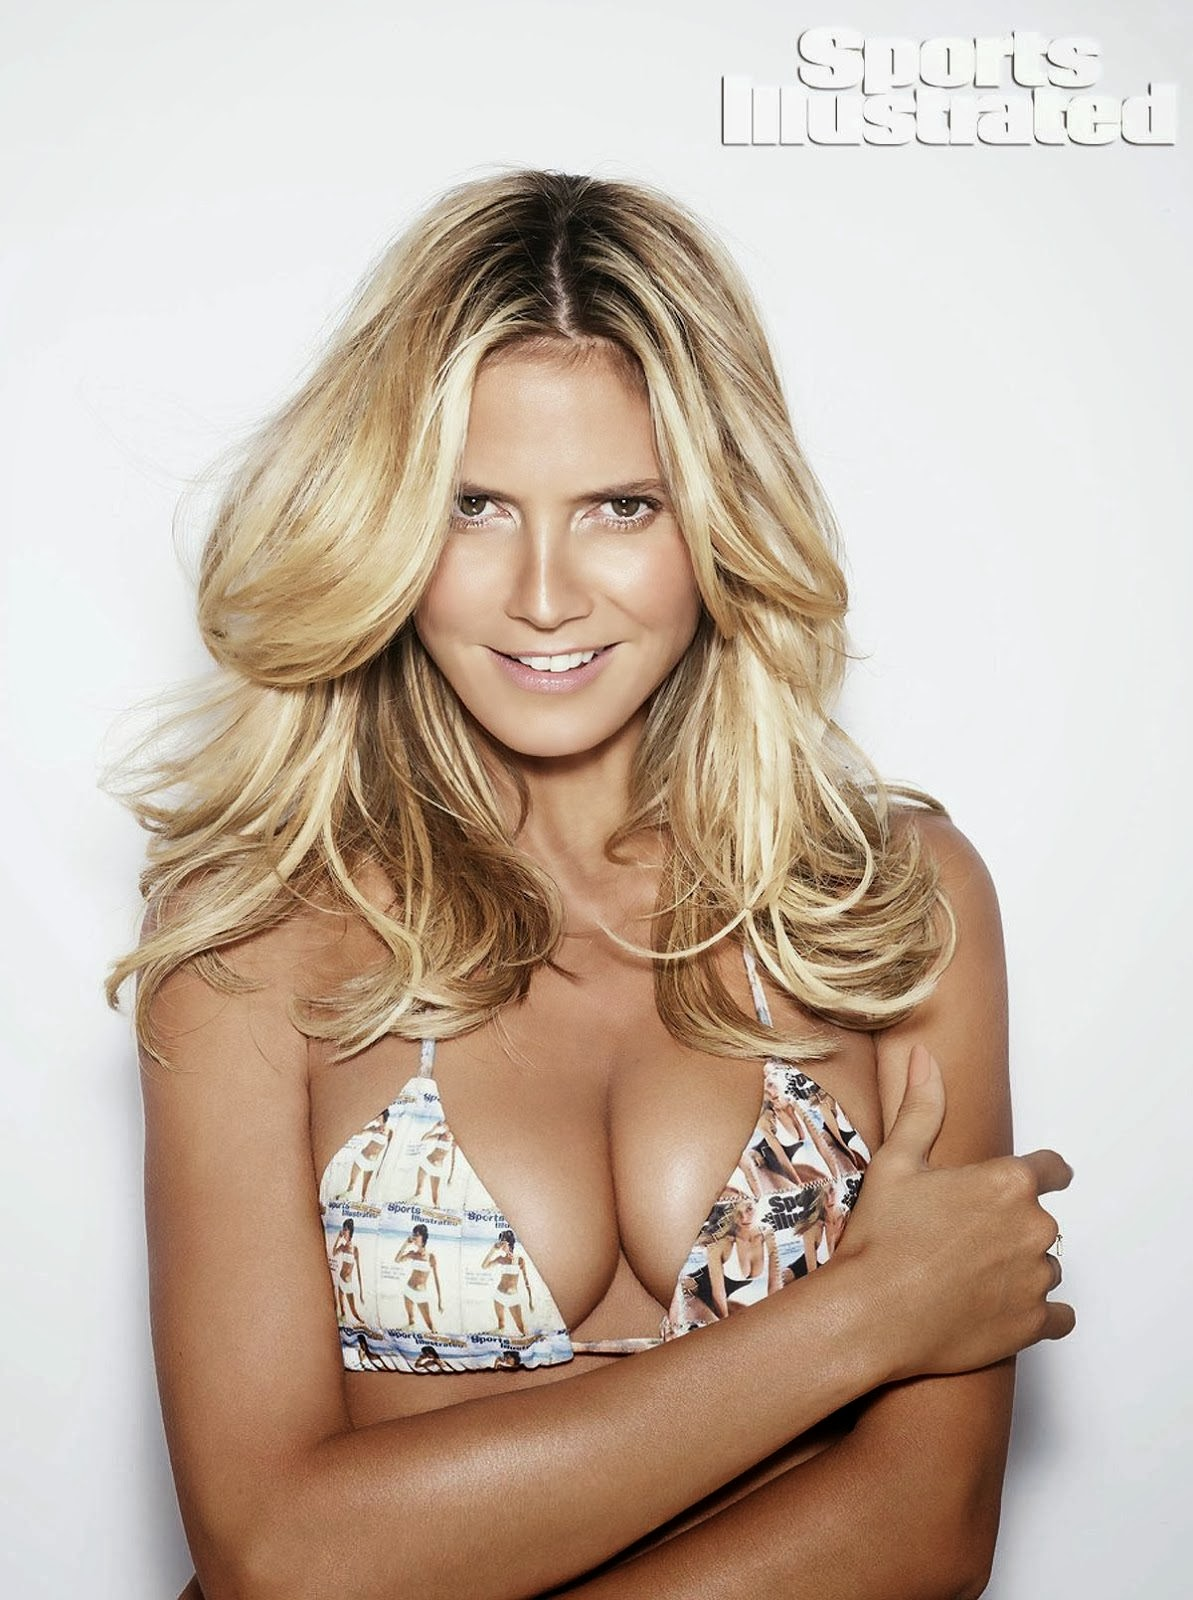 Heidi Klum puts a History in Sports Illustrated 2014 Swimsuit Issue